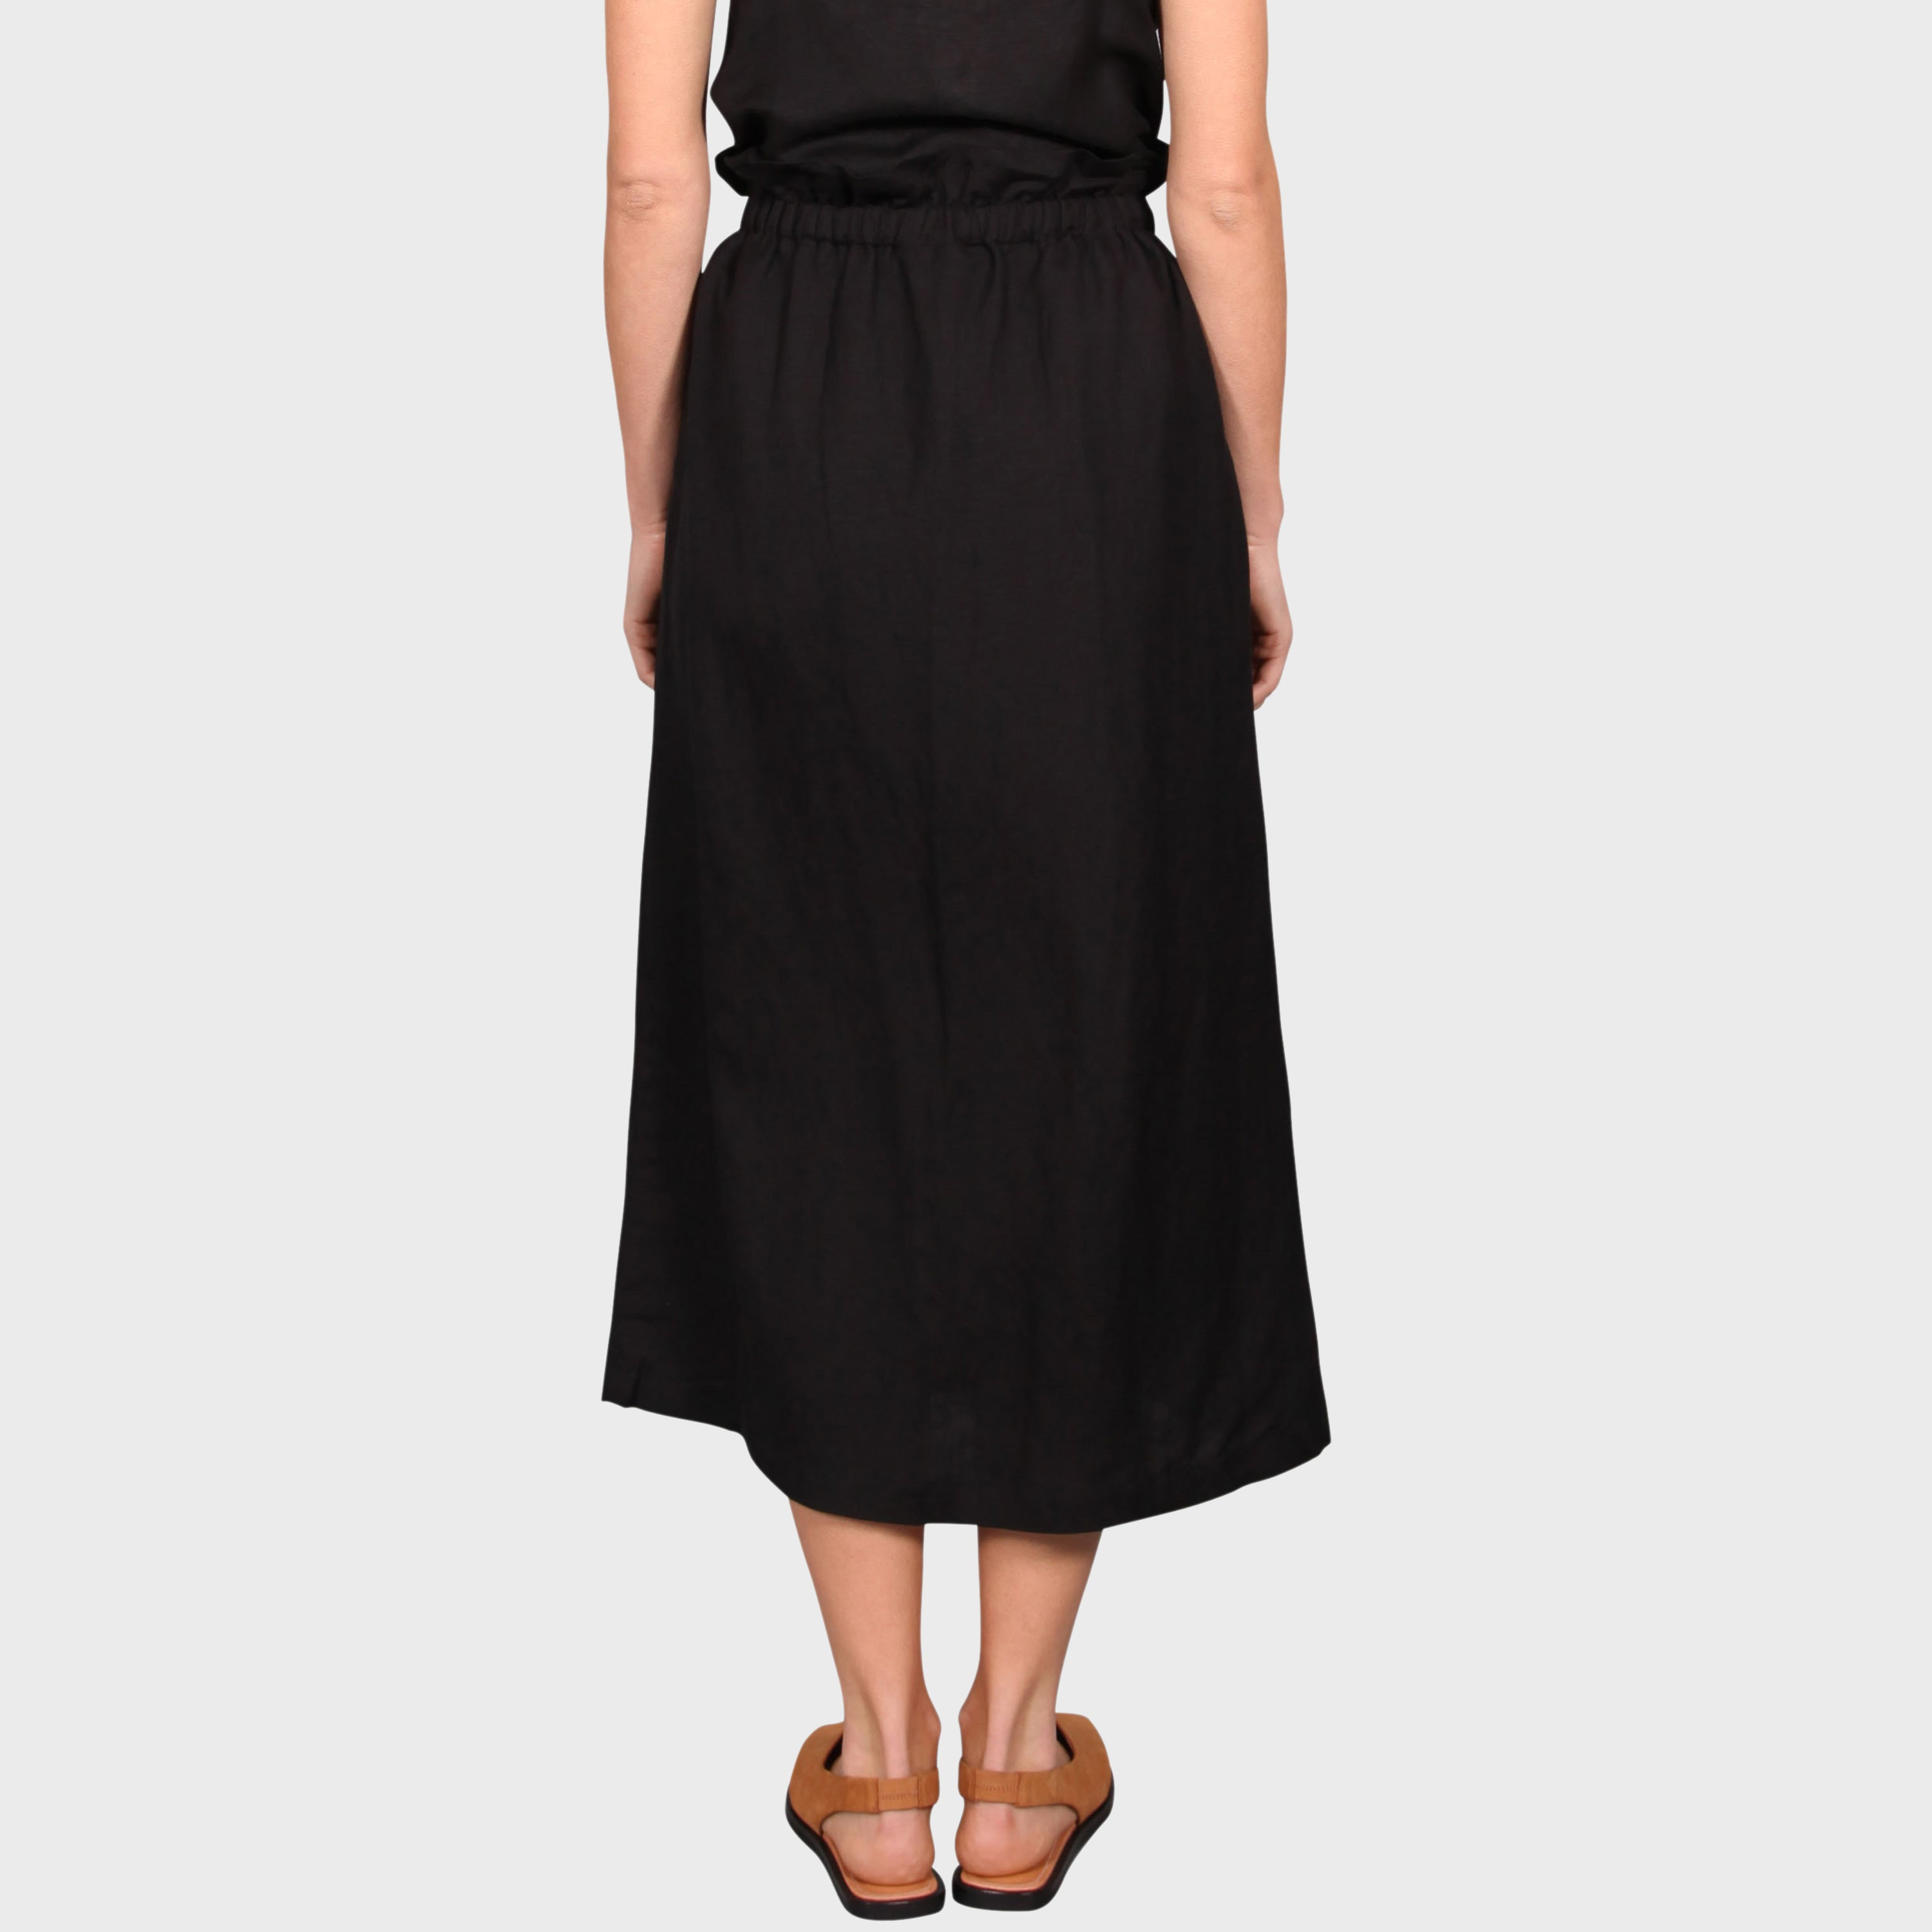 POLLY SKIRT / BLACK